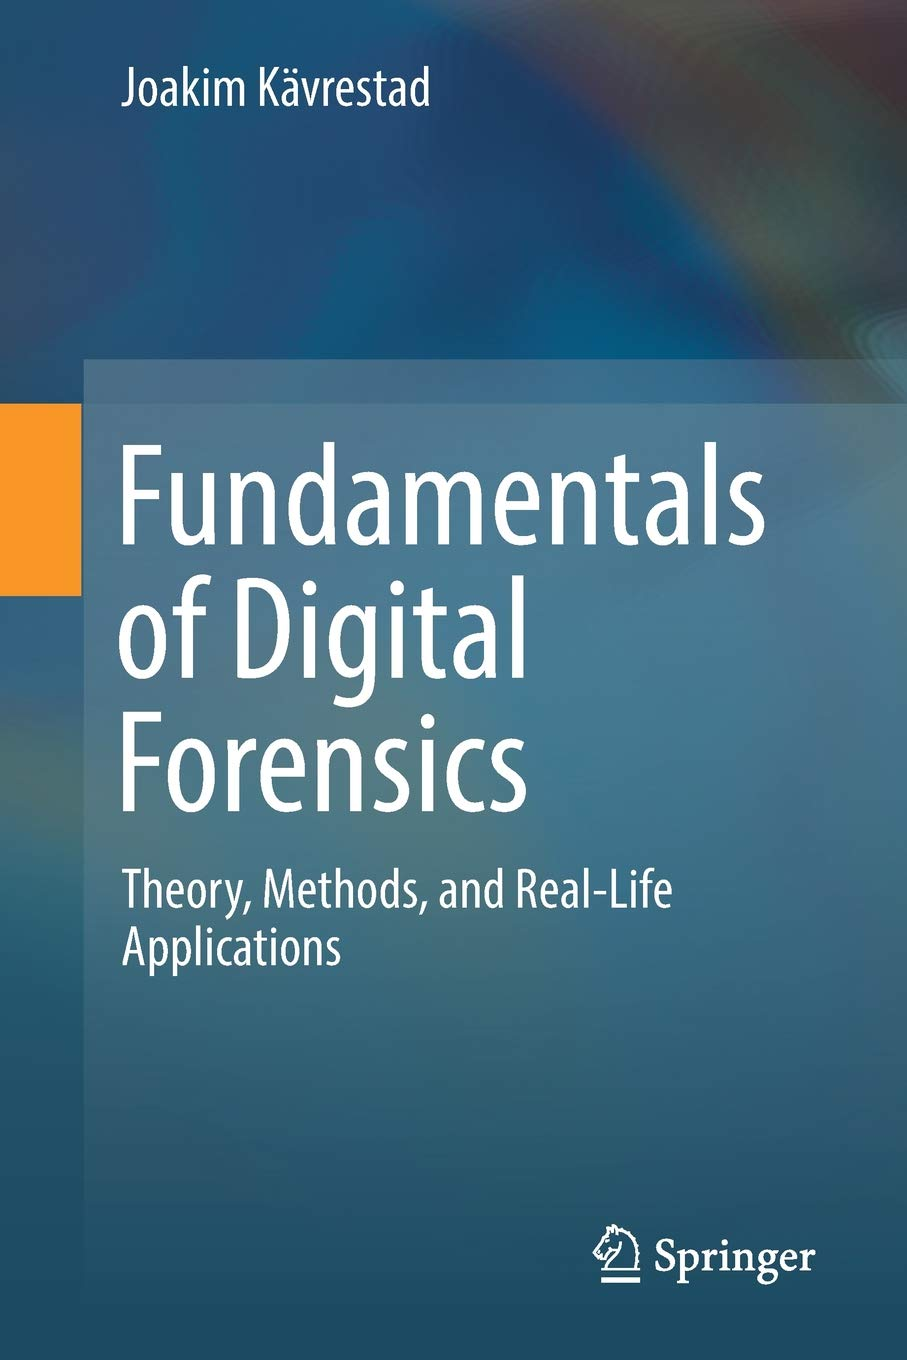 Download Fundamentals of Digital Forensics: Theory, Methods, and Real-Life Applications pdf epub